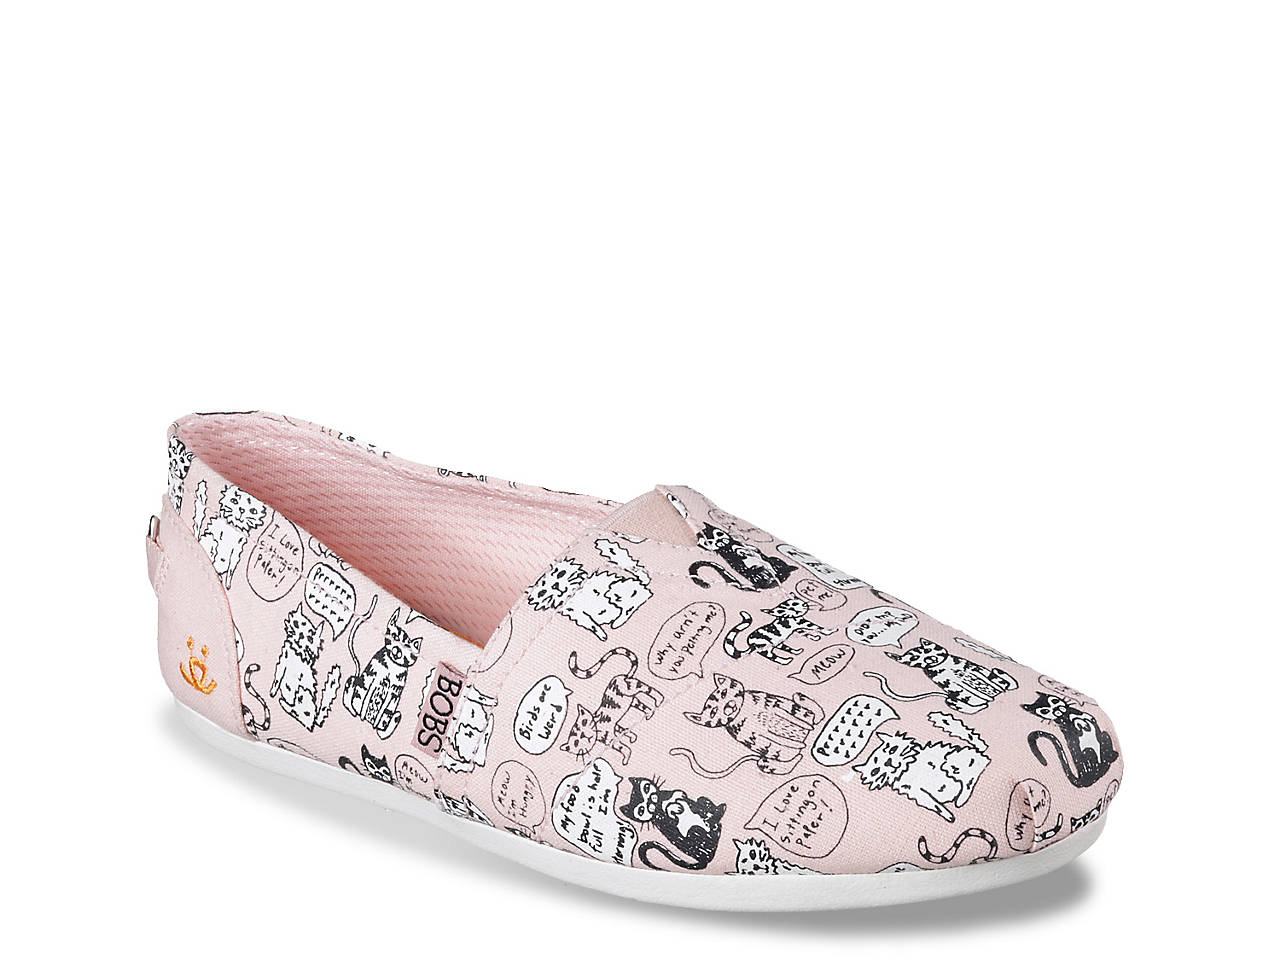 0bb033f63774d Skechers BOBS Quote Me Cats Slip-On Women's Shoes | DSW